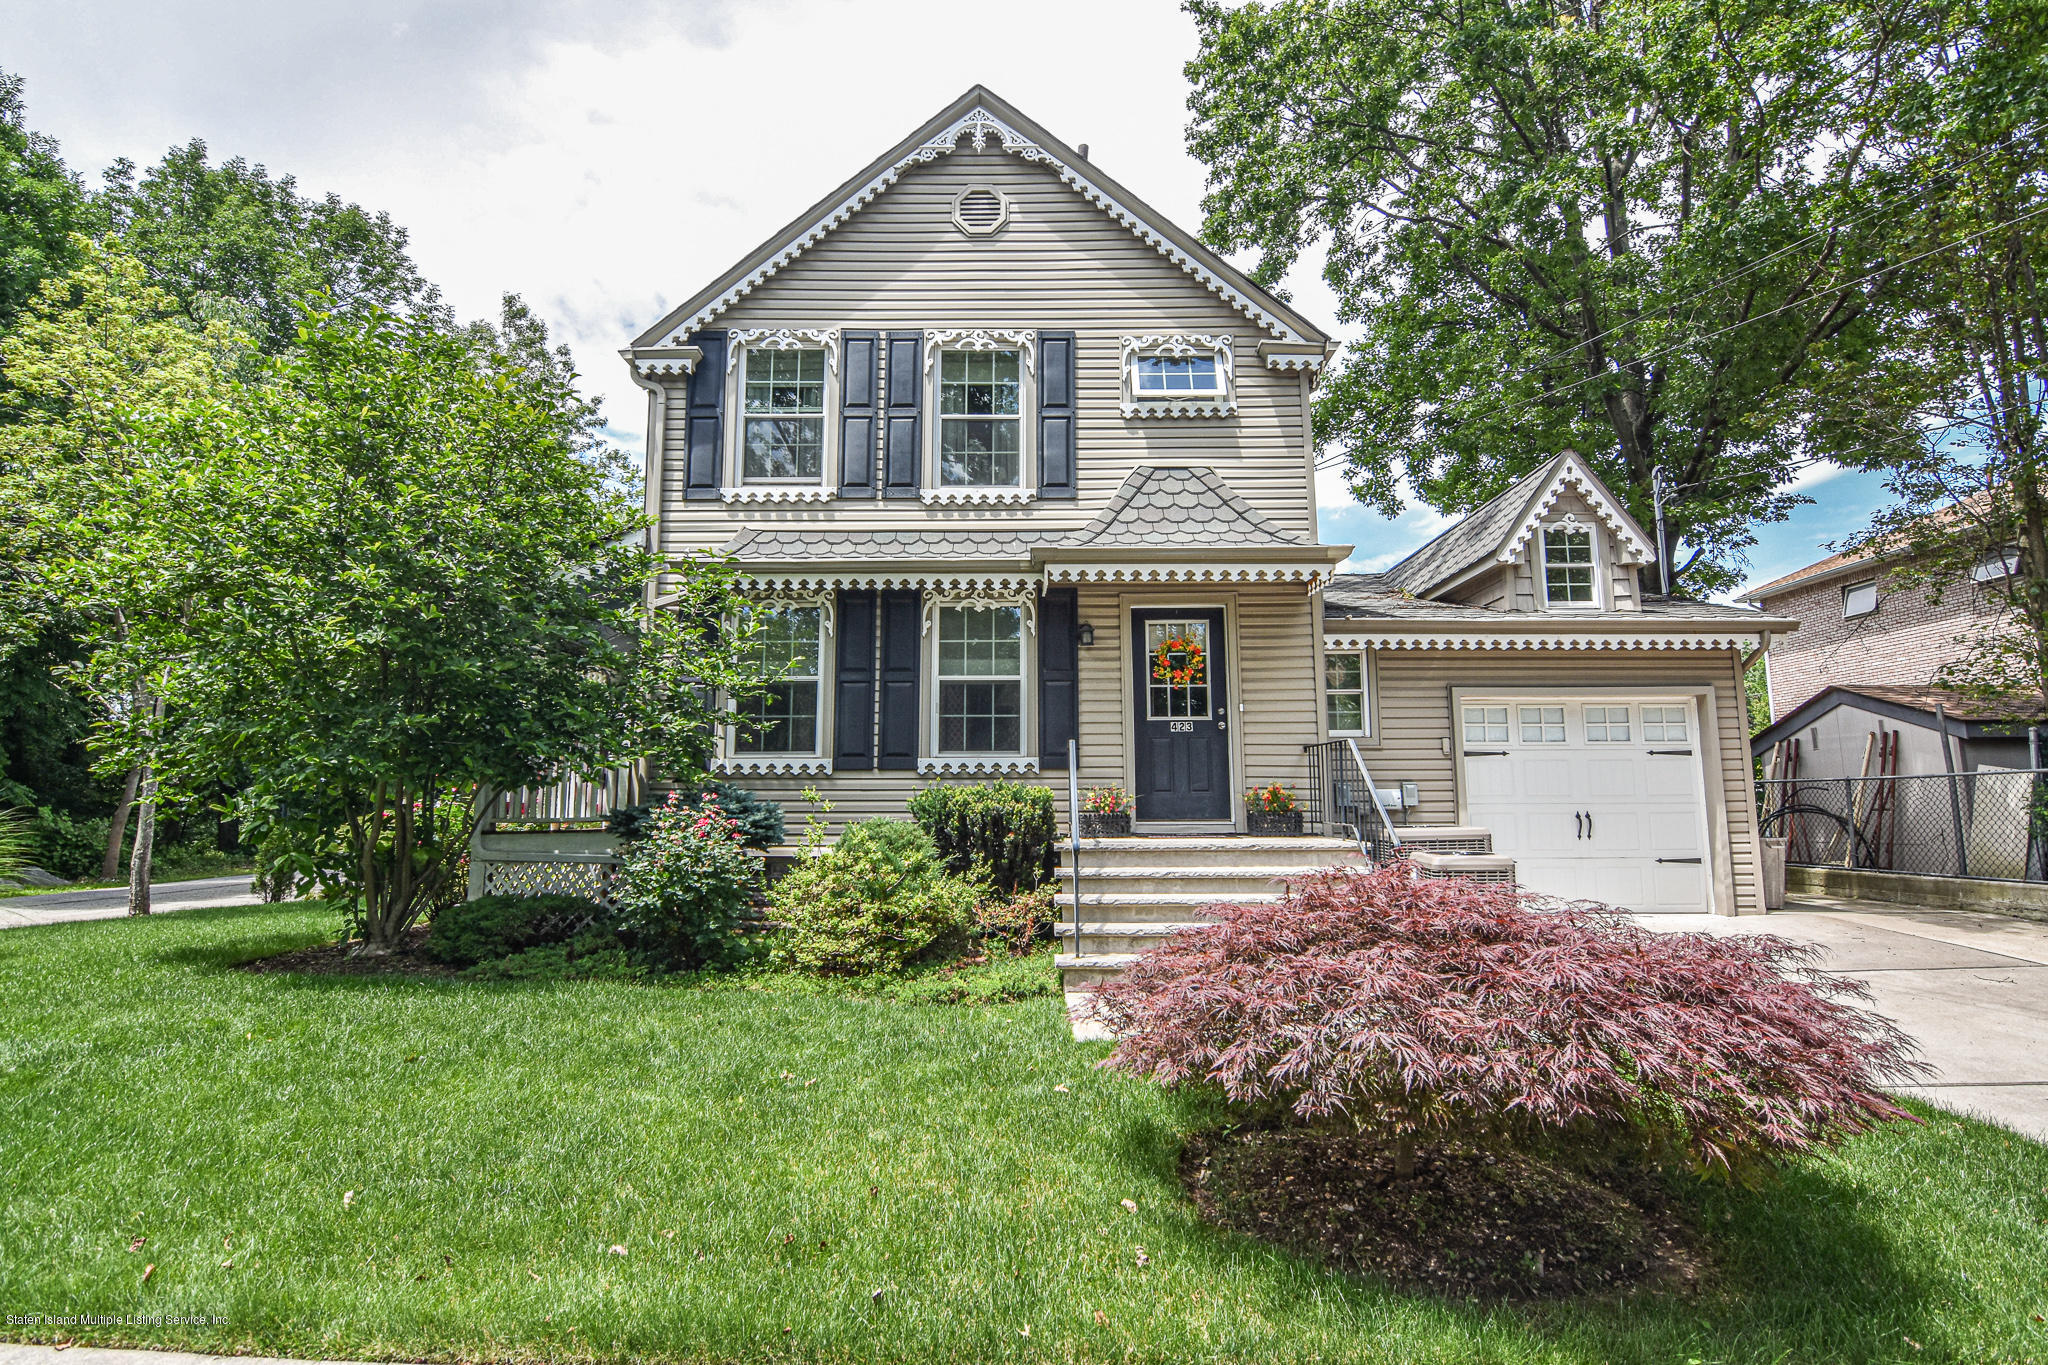 Single Family - Detached 45 Androvette Avenue  Staten Island, NY 10312, MLS-1130190-4